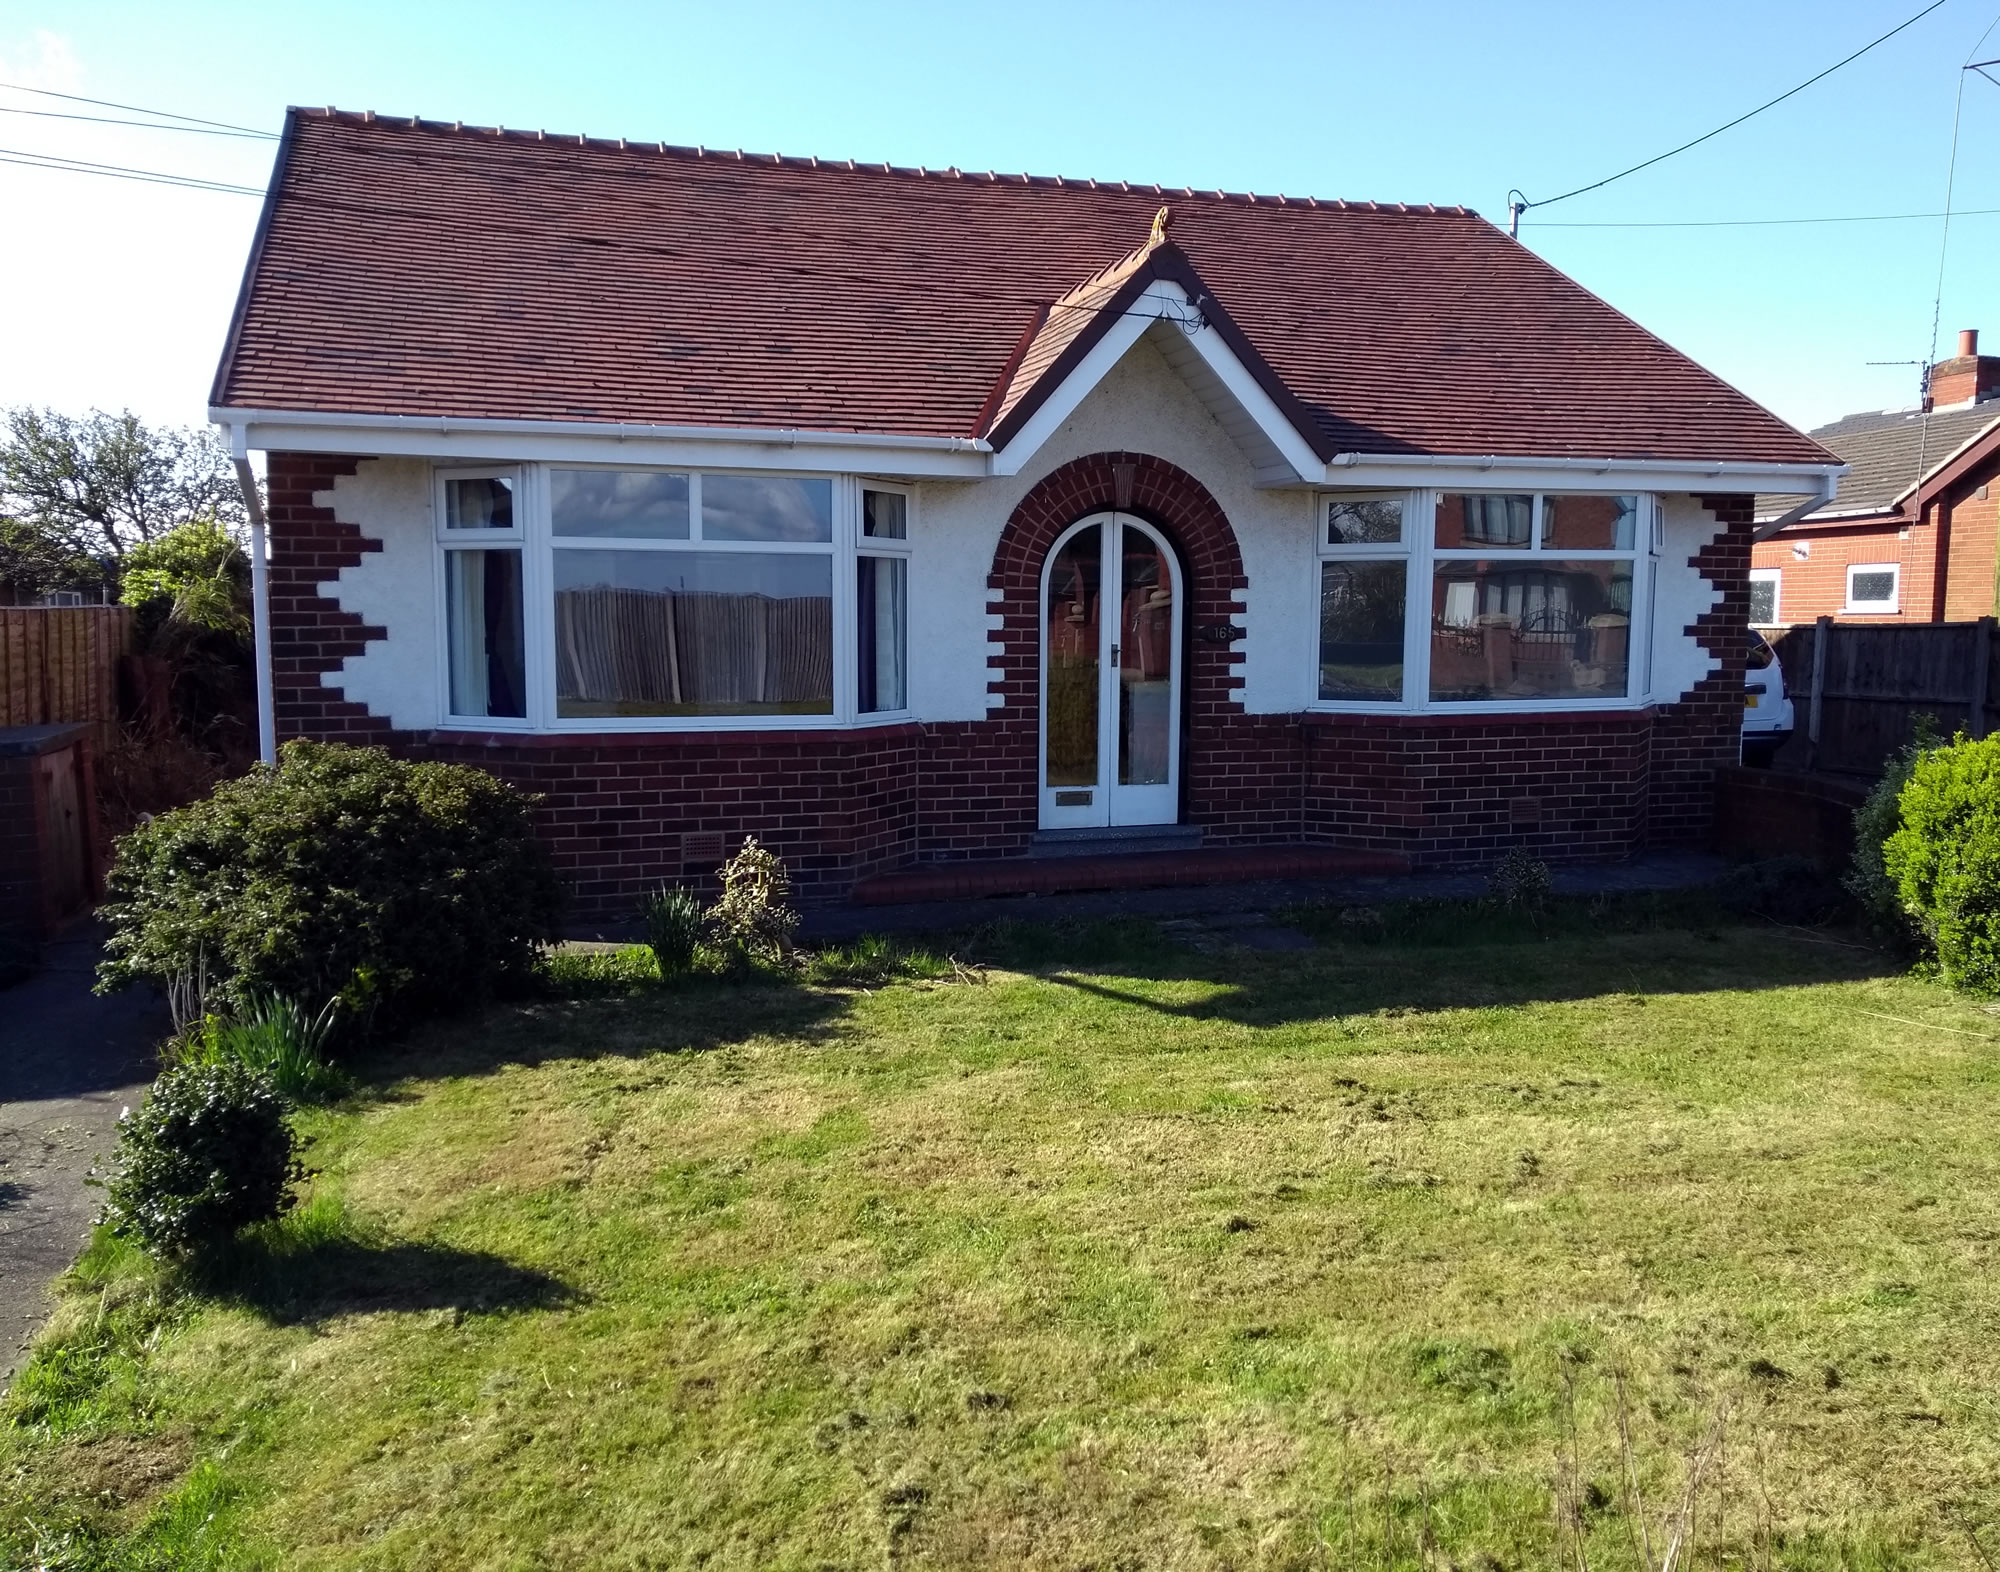 165 Moss Lane - Available to rent